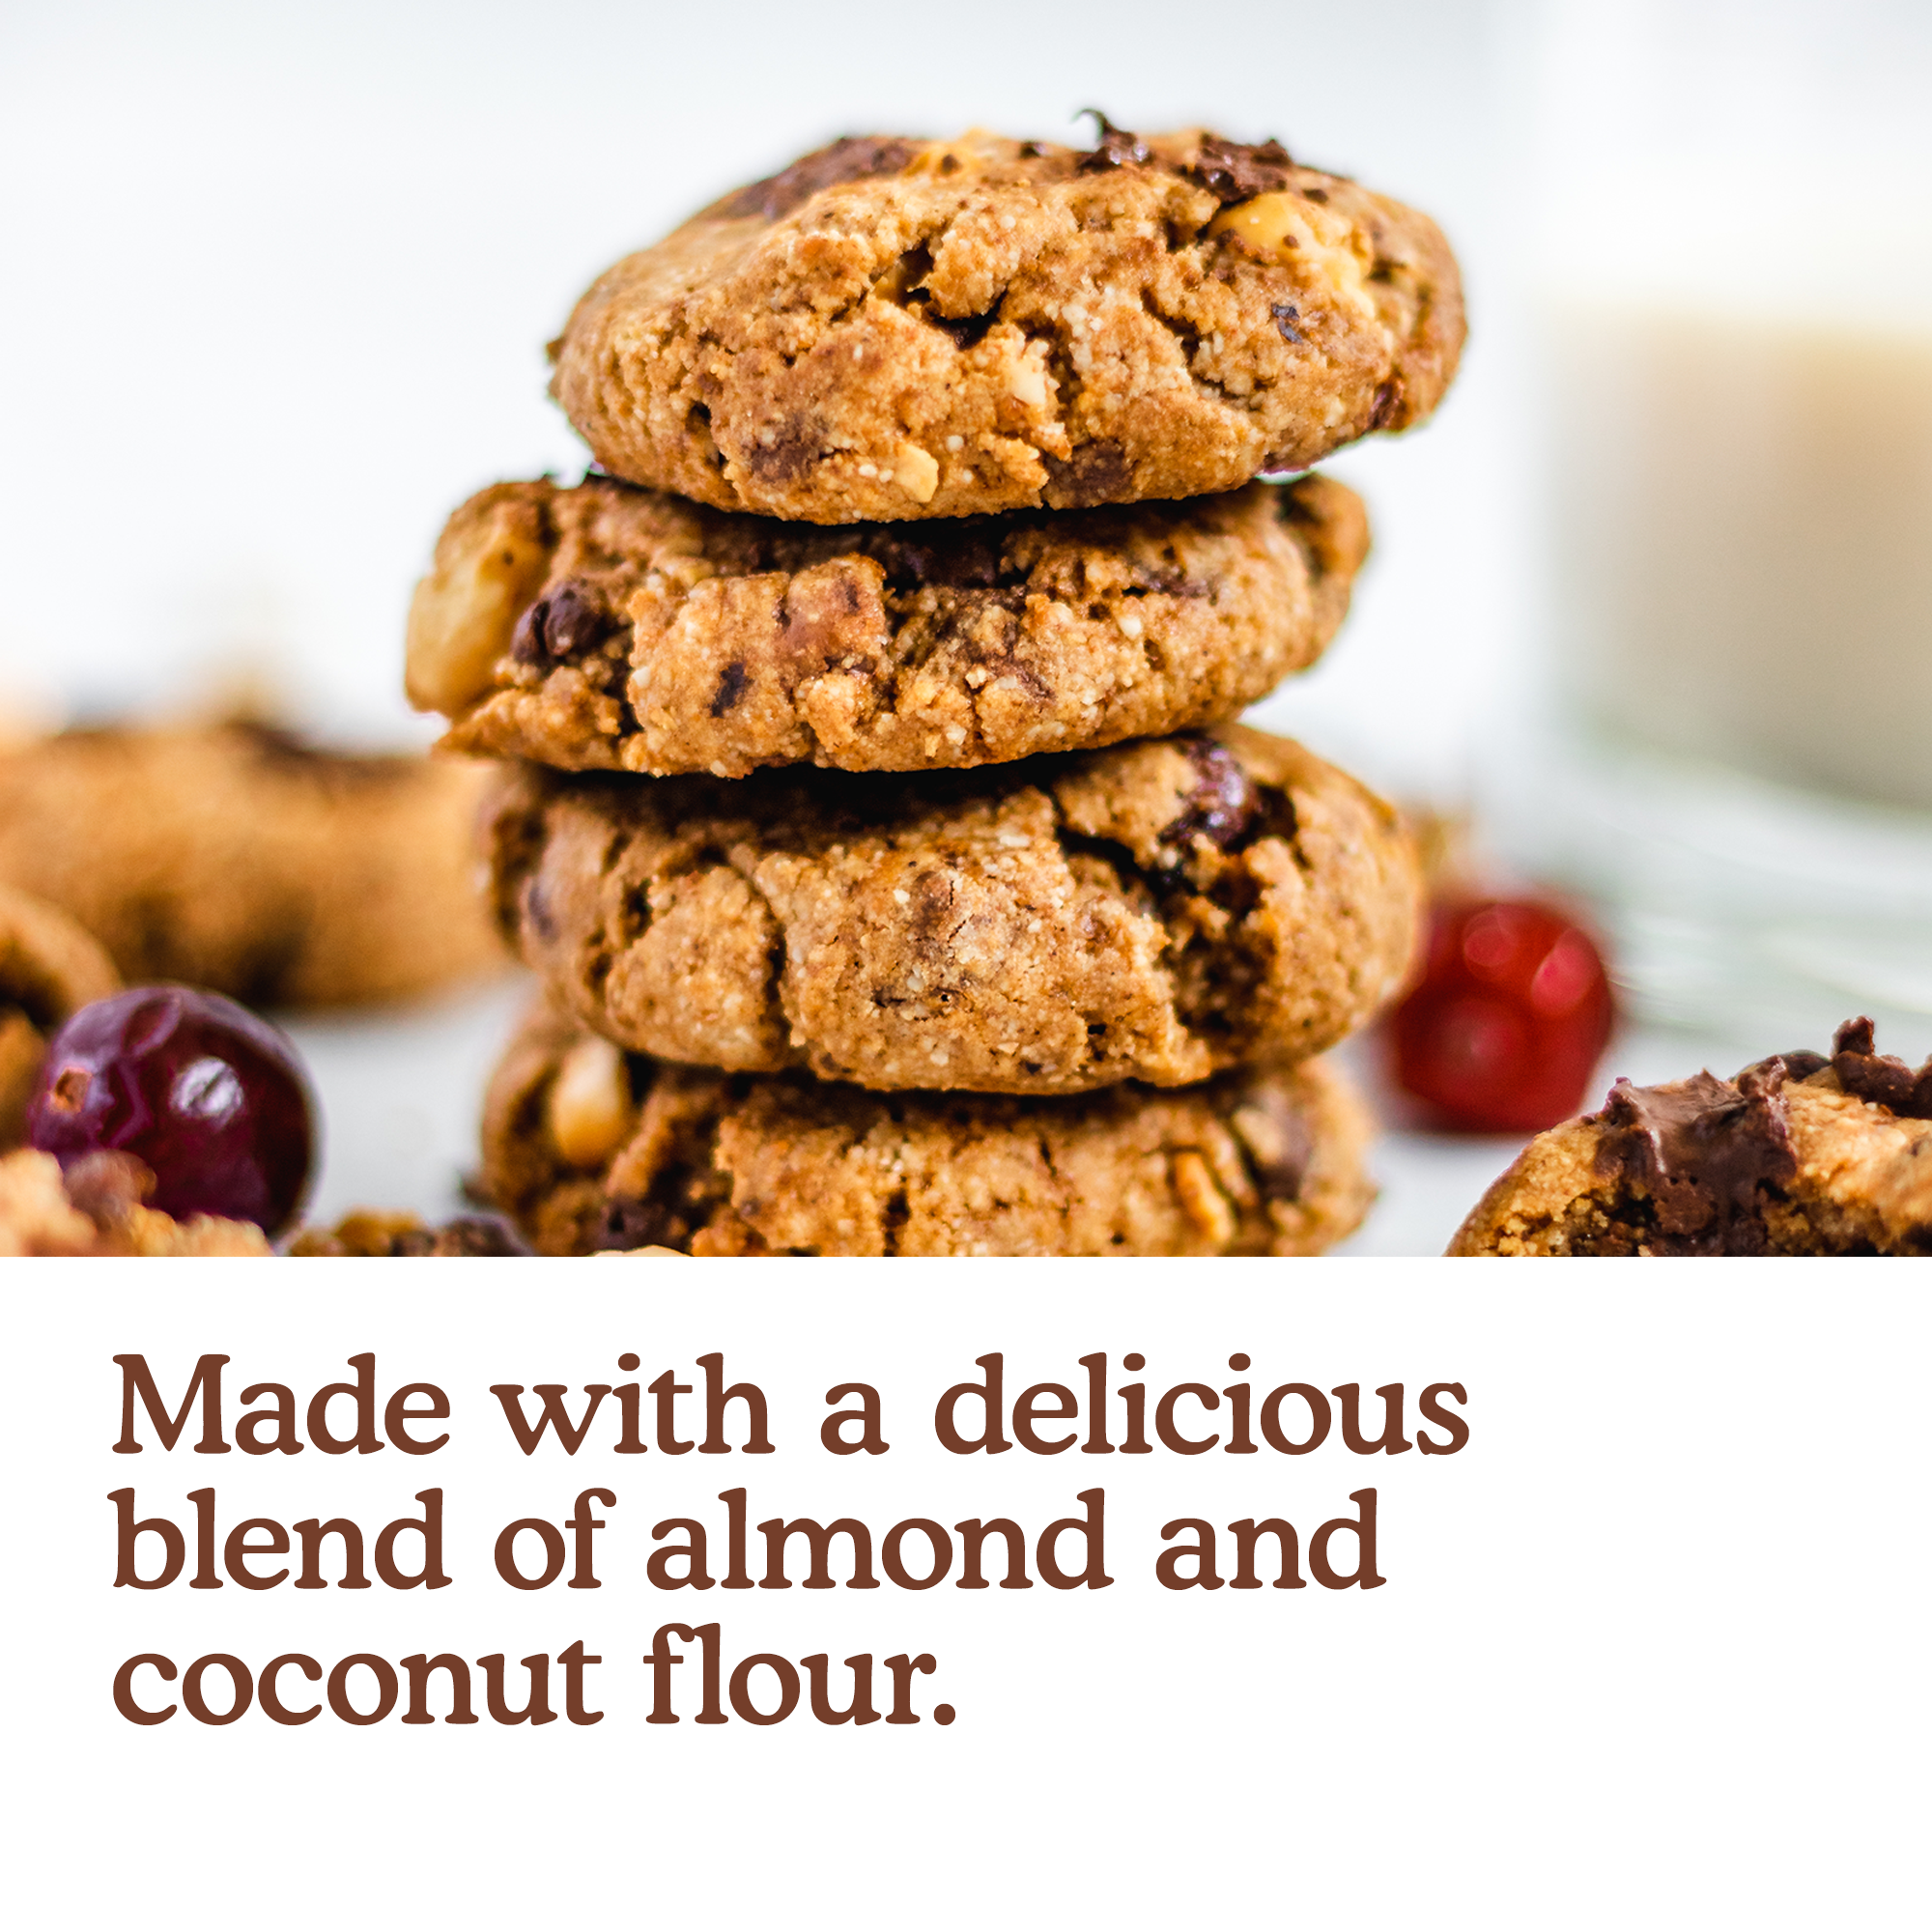 Made with a delicious blend of almond and coconut flour